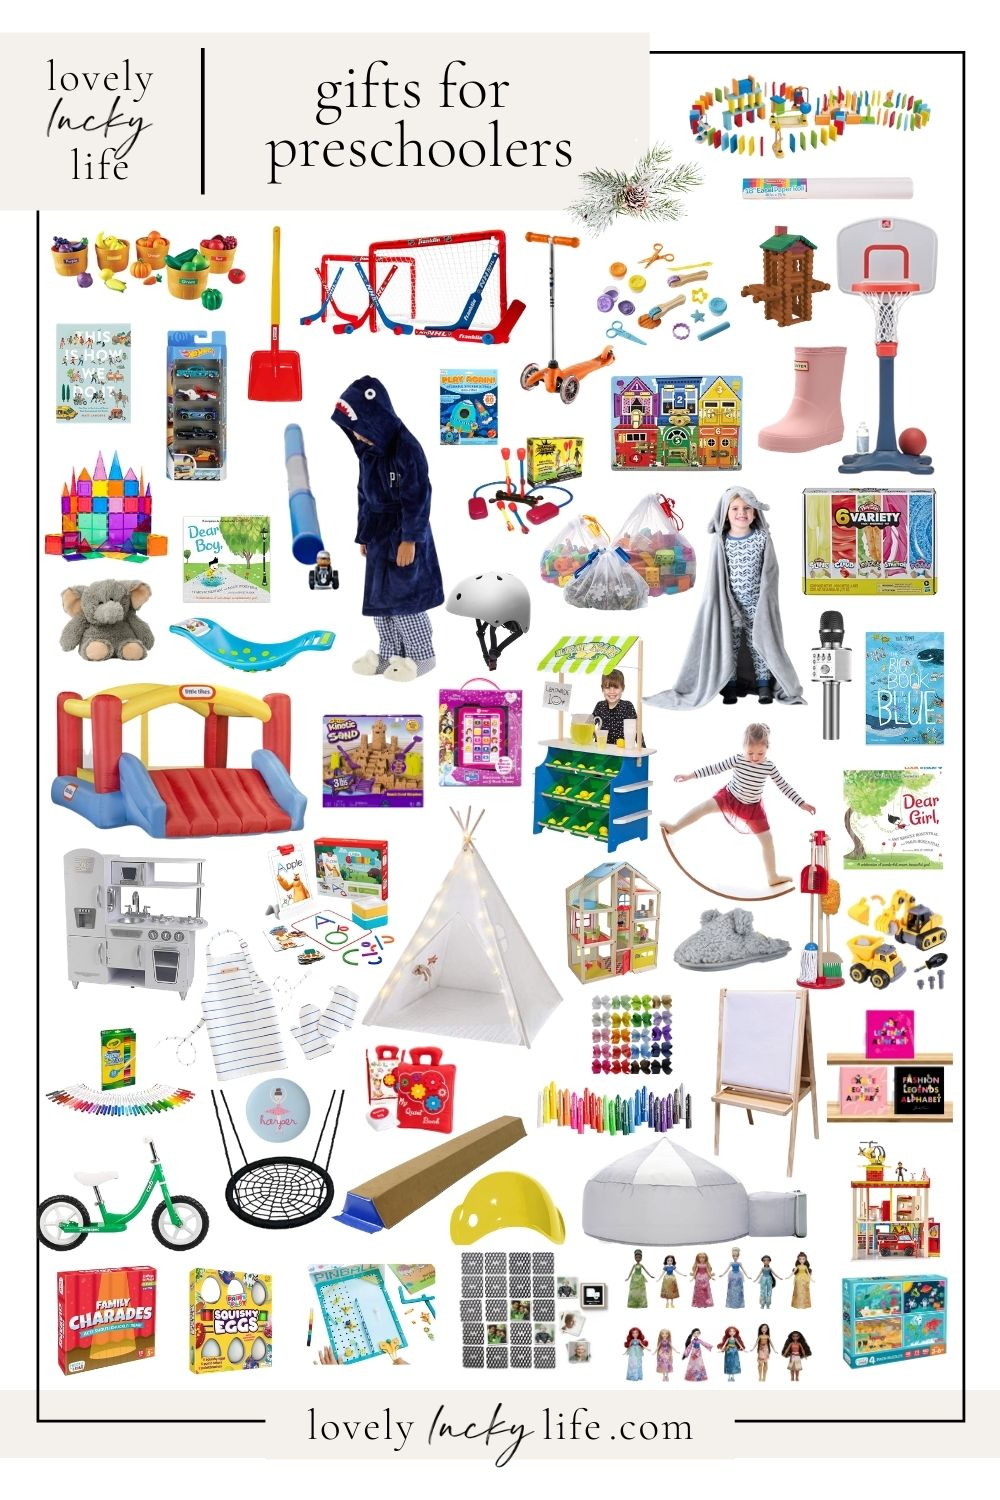 Best Christmas Gifts For Preschoolers 60 Ideas Lovely Lucky Life